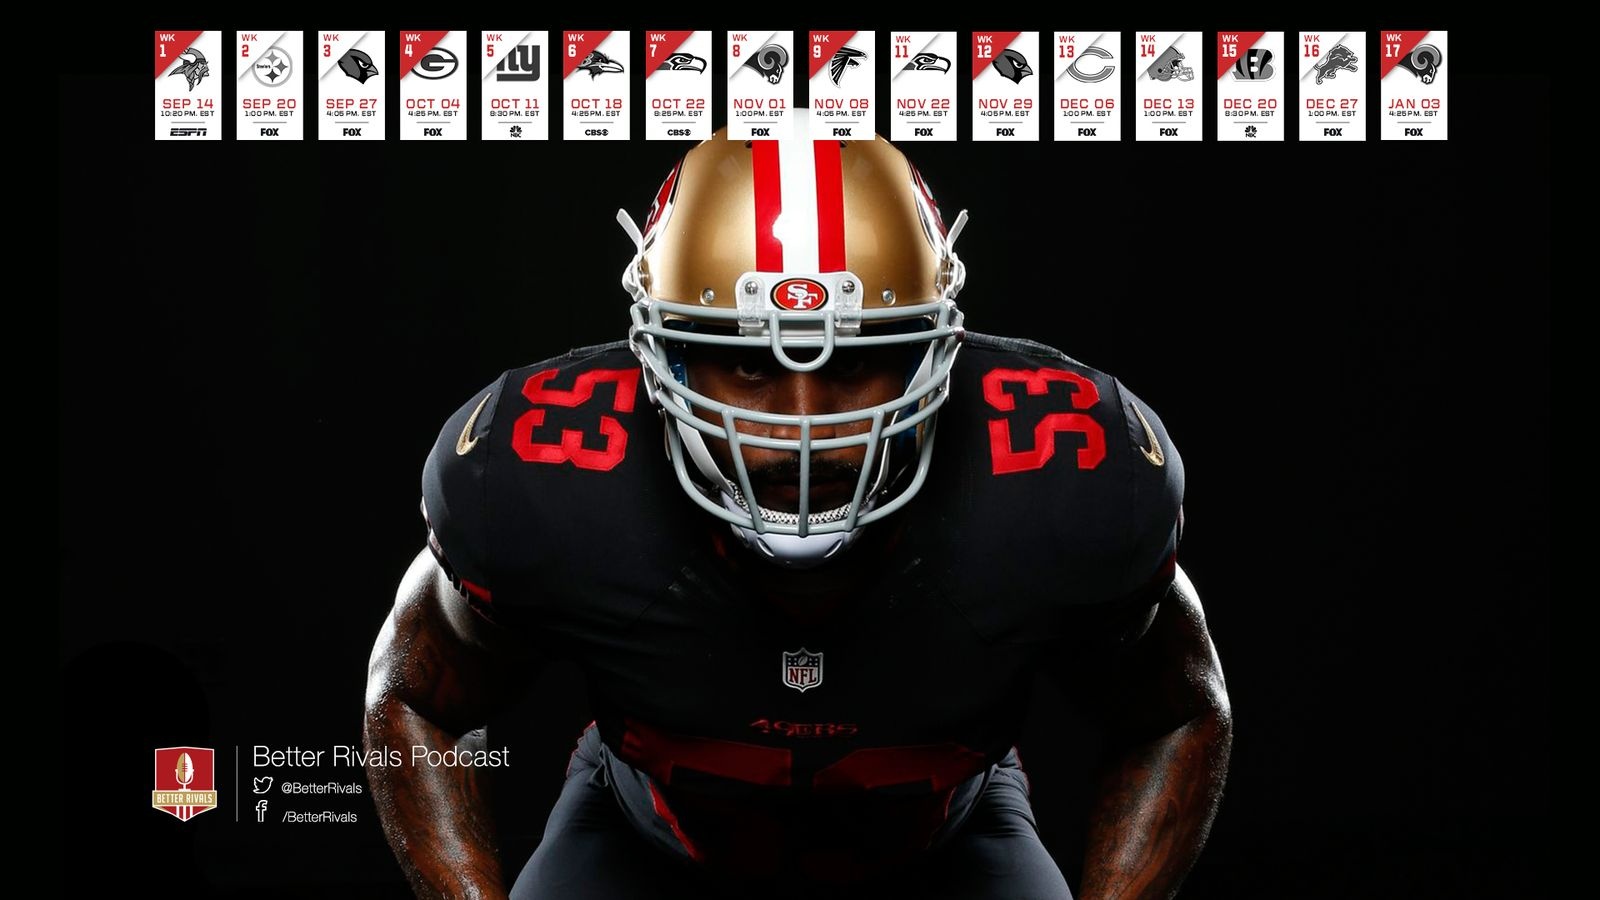 49ers 2015 Schedule Wallpapers   Niners Nation 1600x900